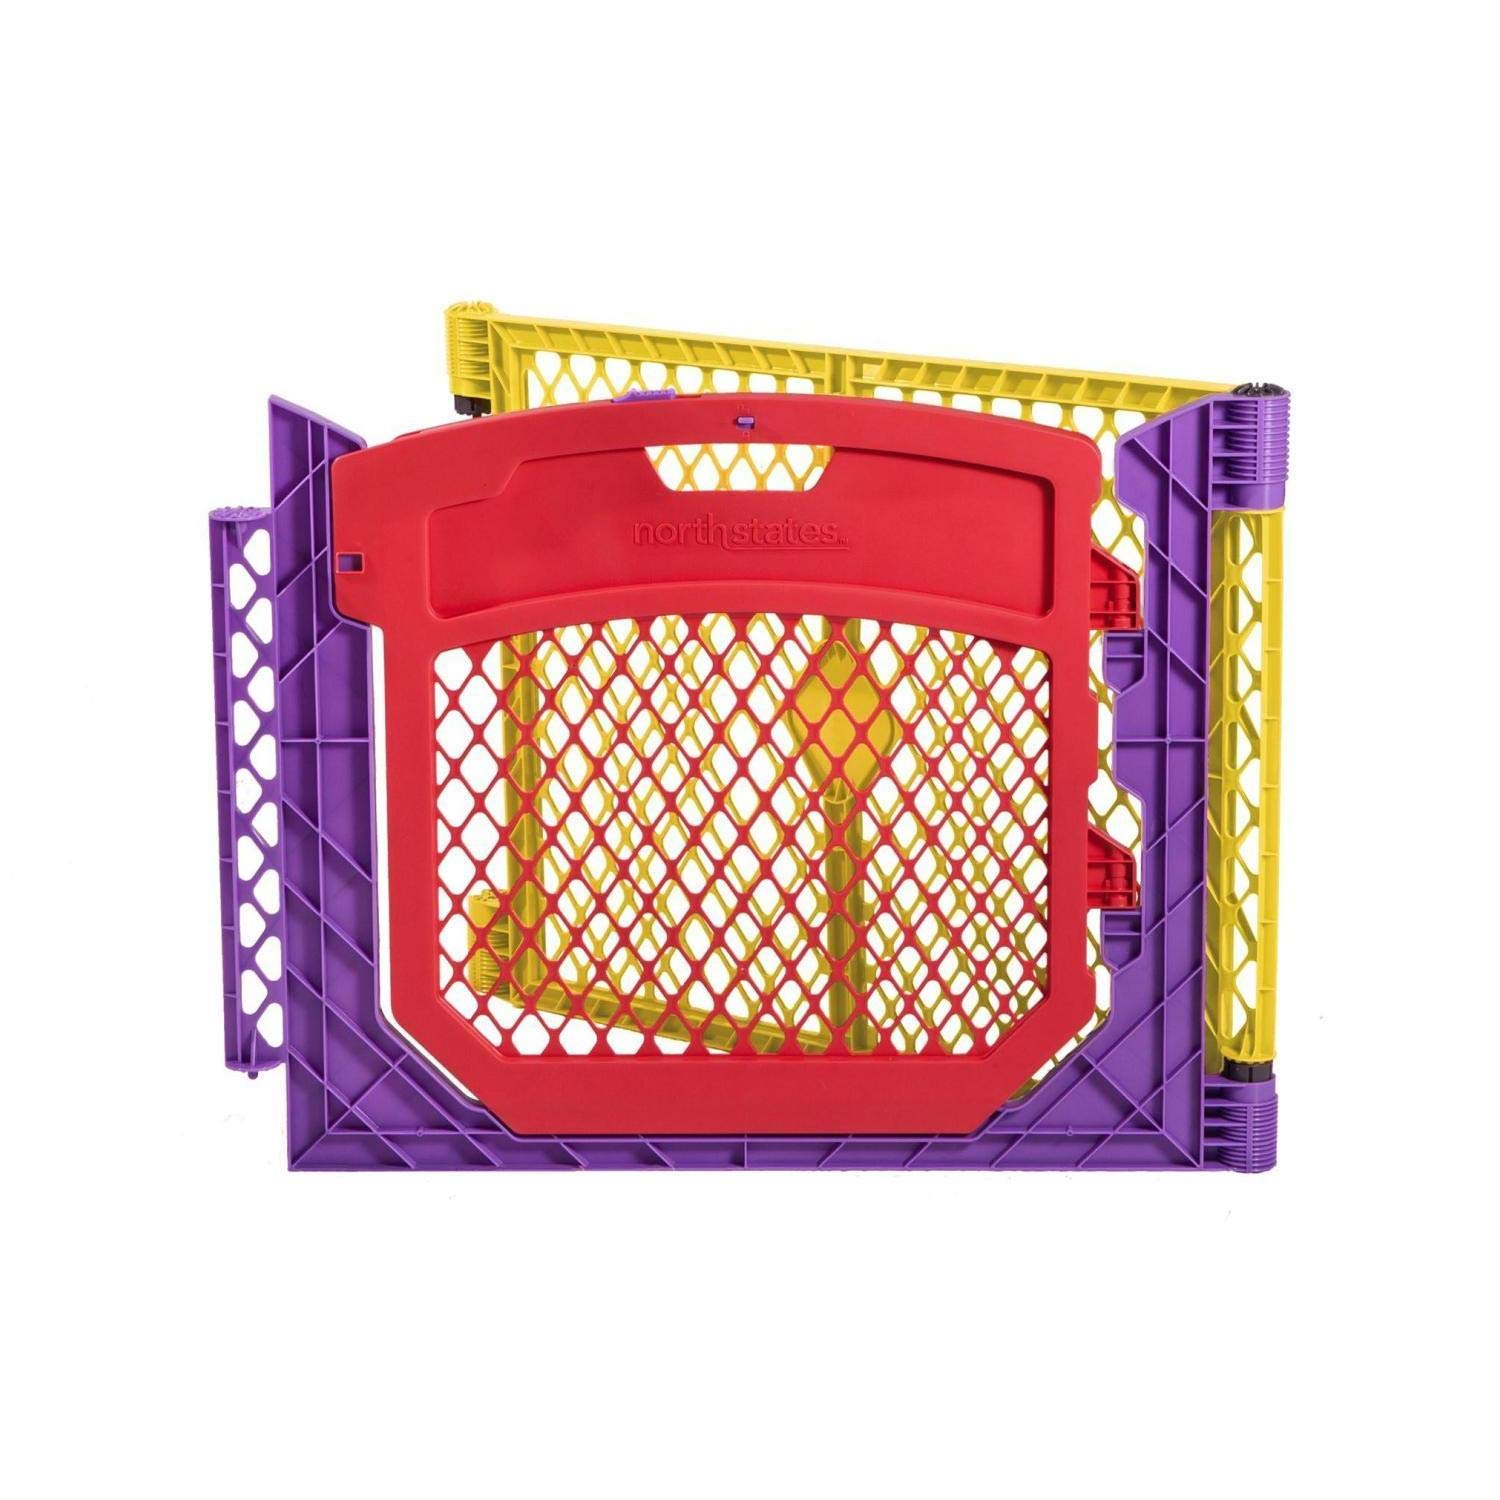 North States 2-Panel Extension with Door for Multicolor Superyard Colorplay: Increases Play Space up to 34.4 sq. ft. (Adds 64'', Multicolor) by North States